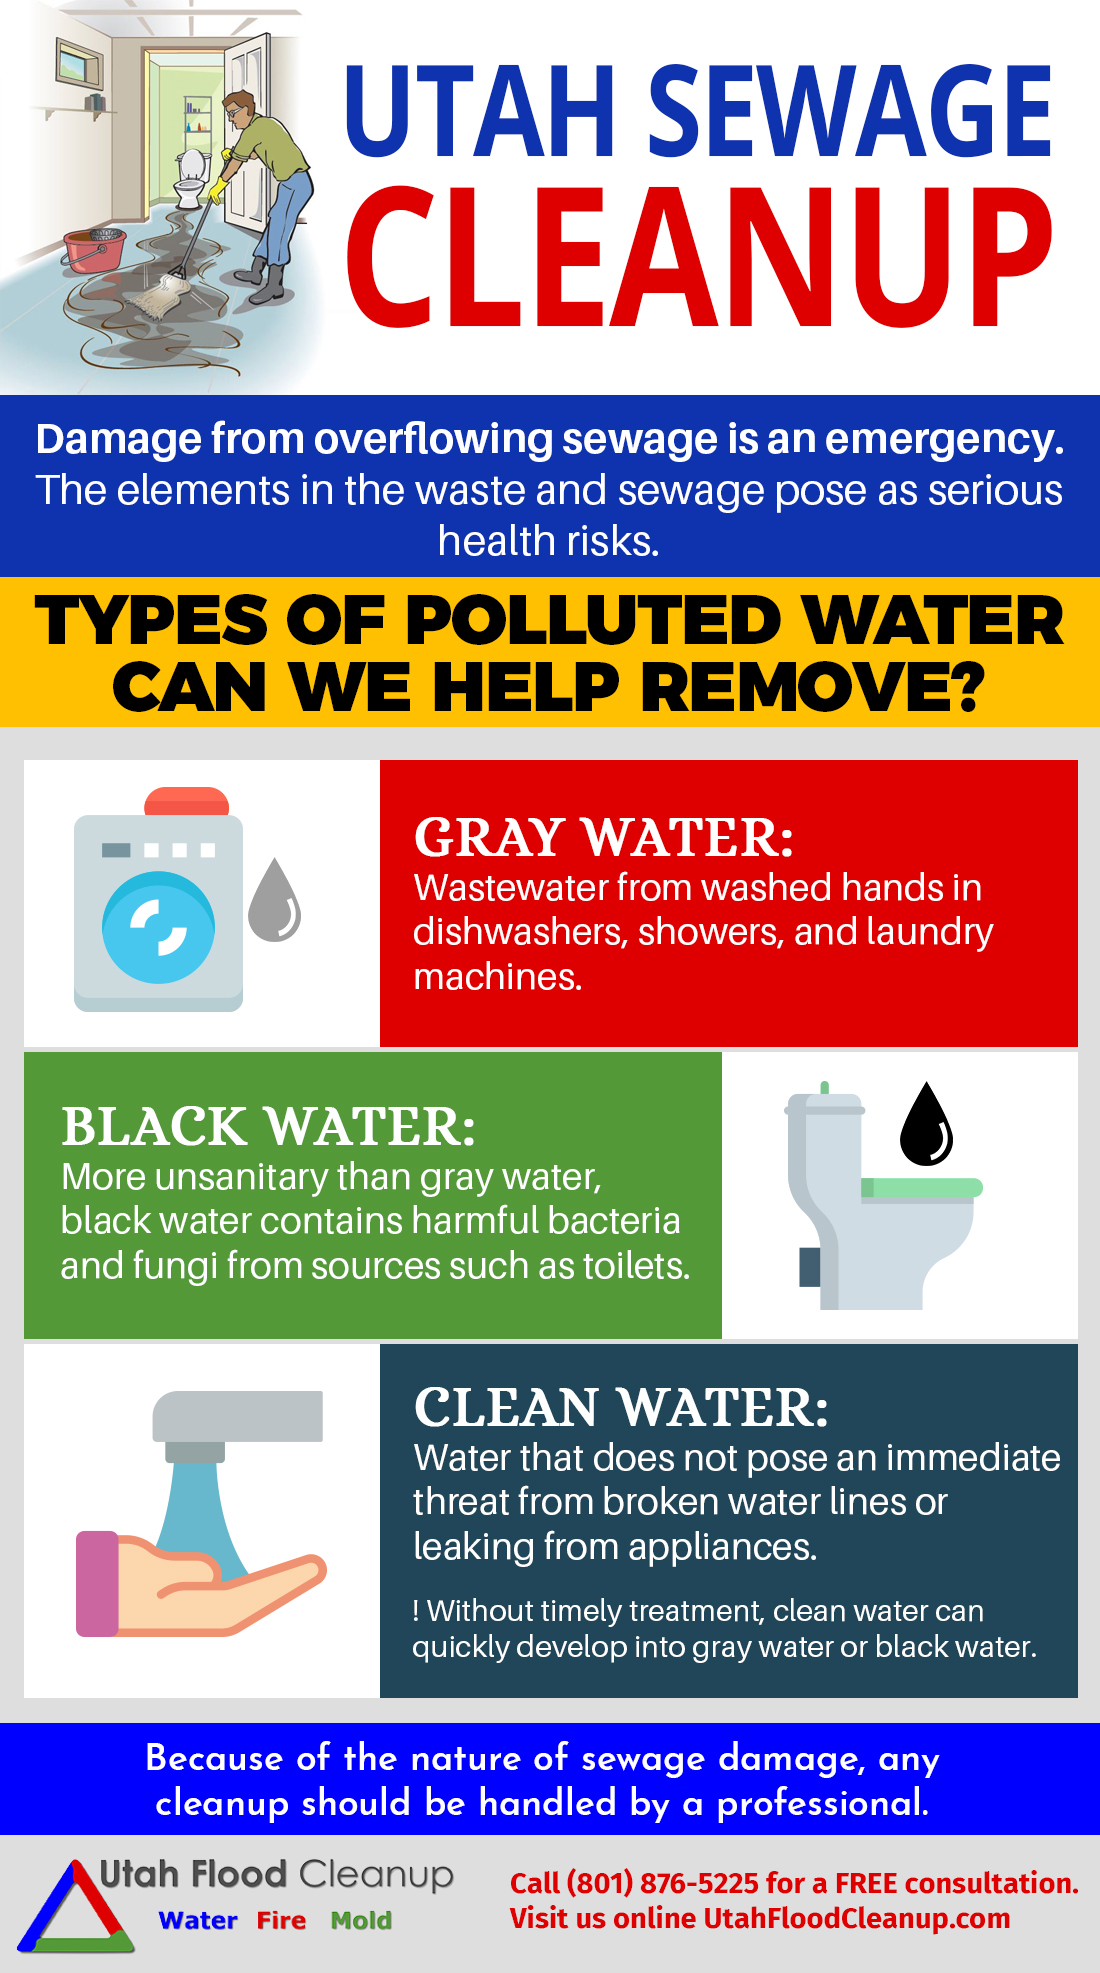 Sewage Cleanup infographic57